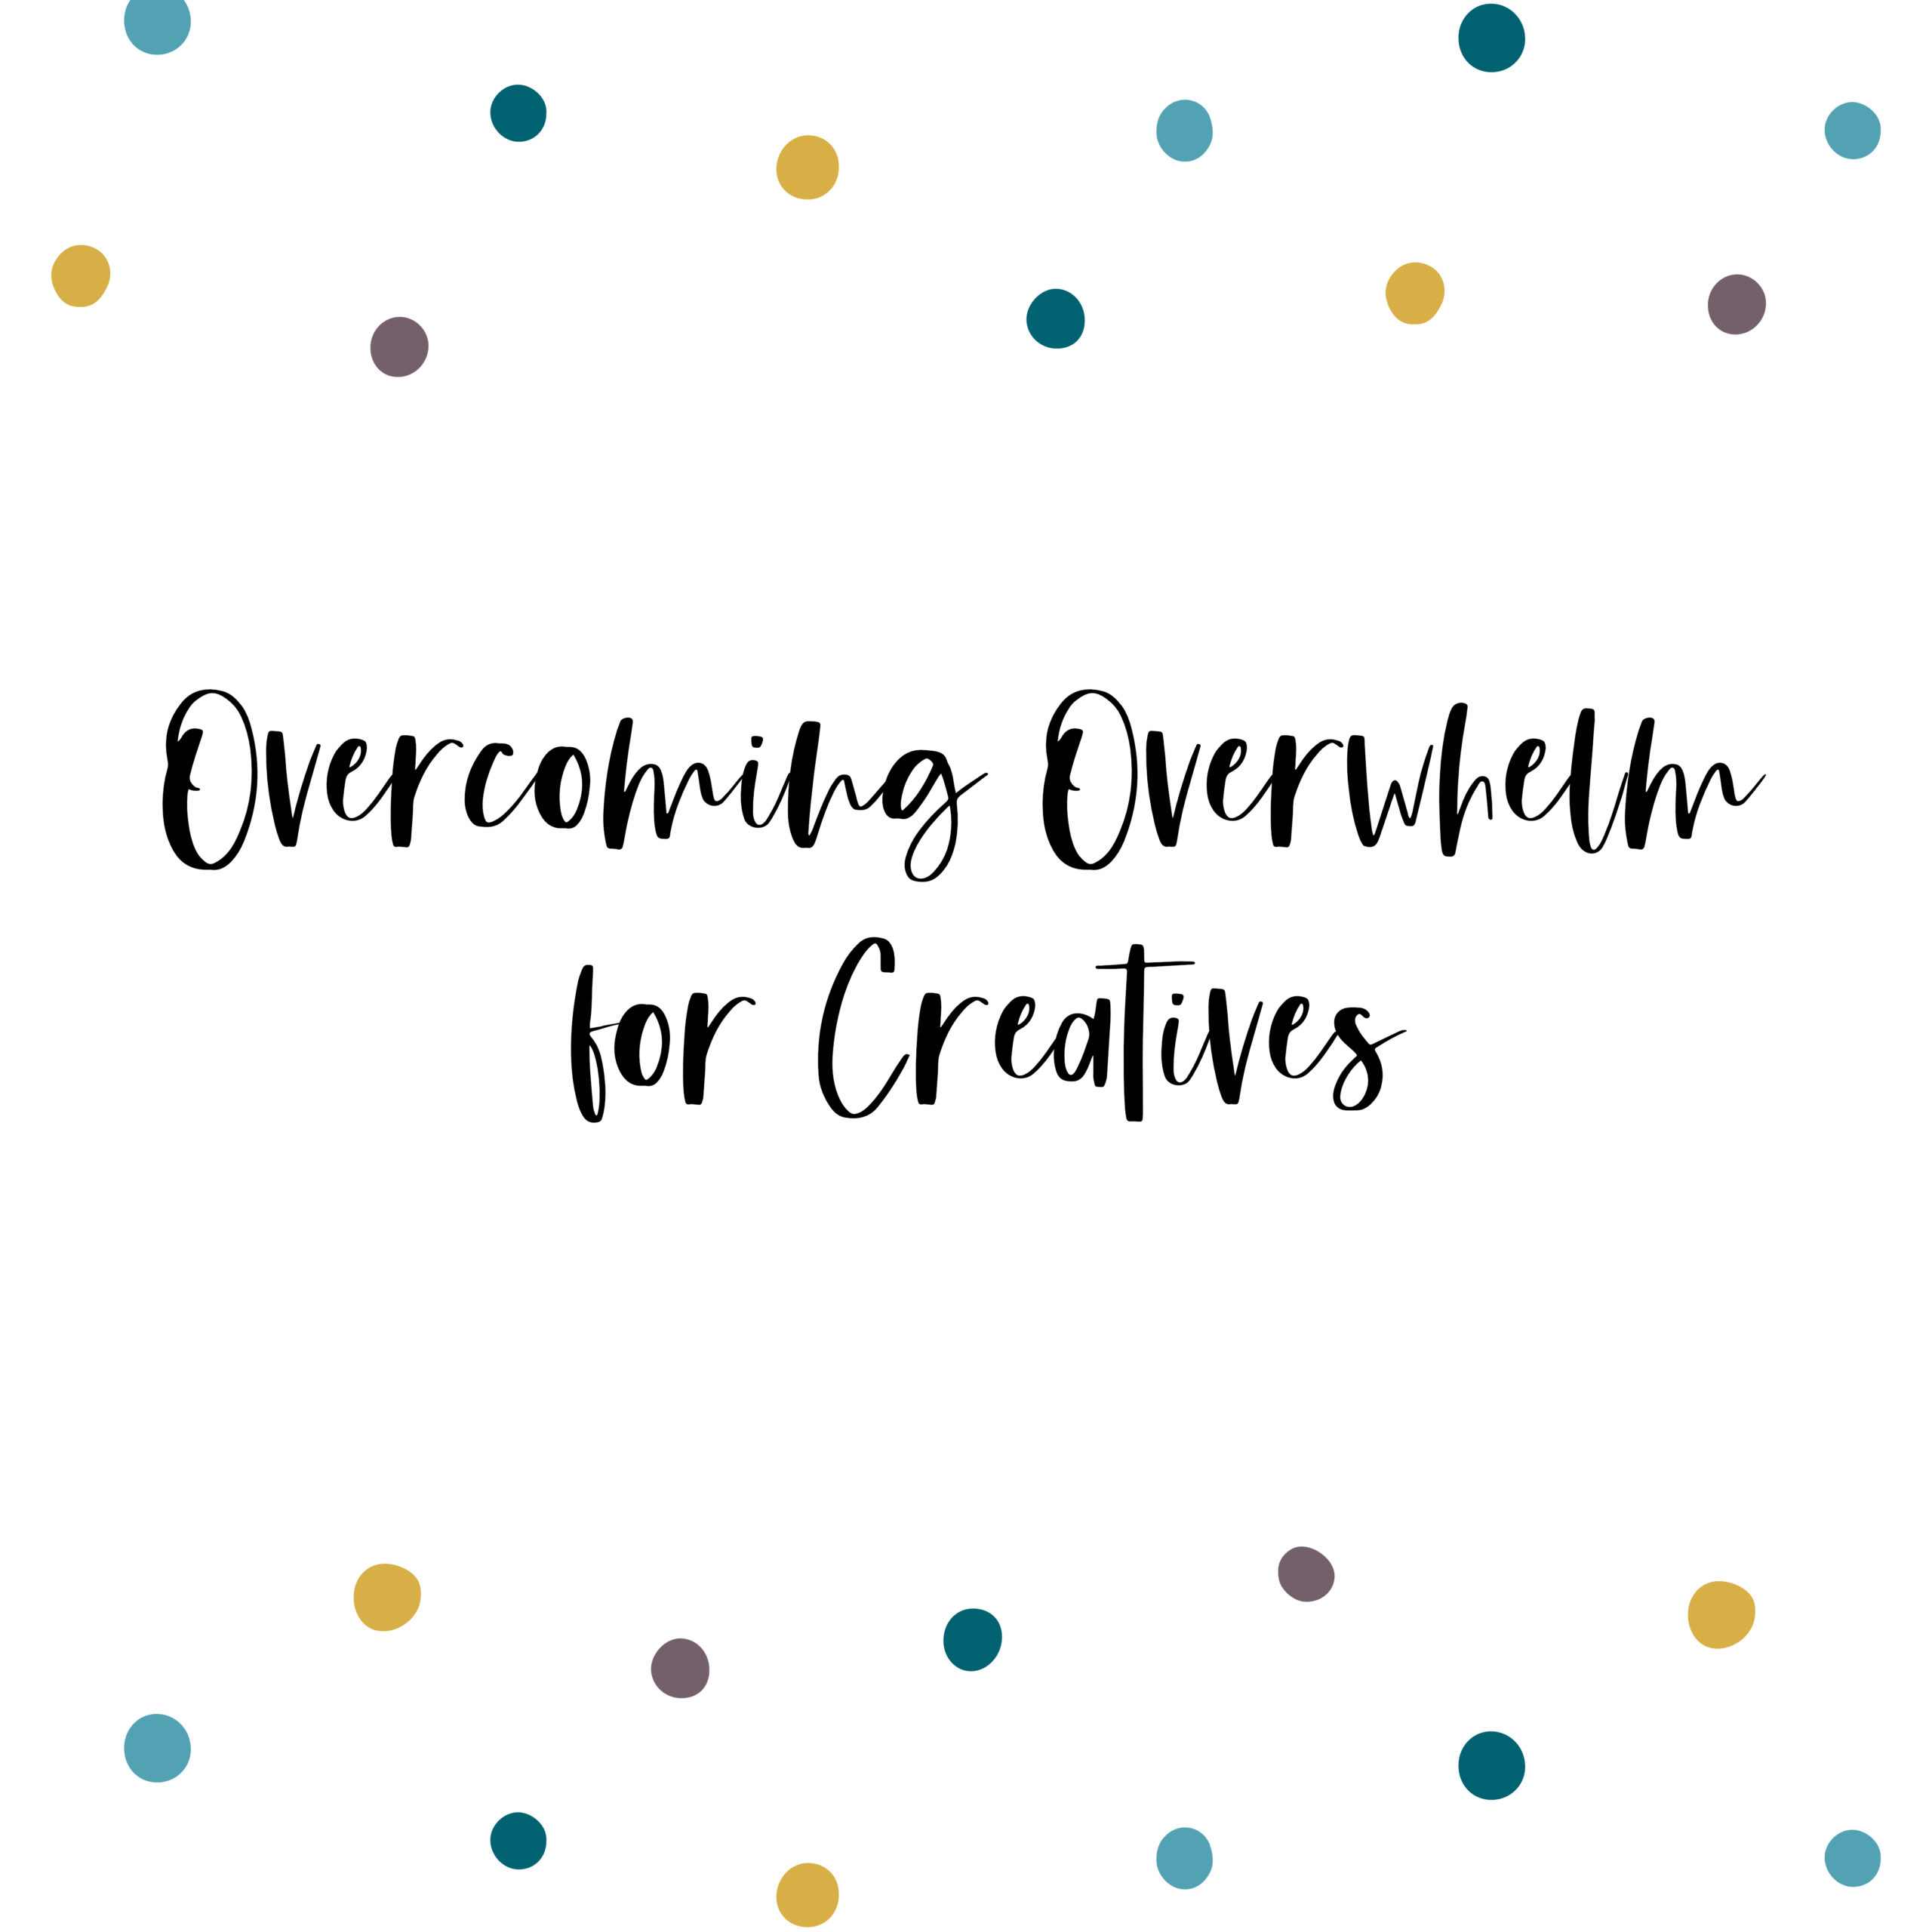 Overcoming Overwhelm for creatives